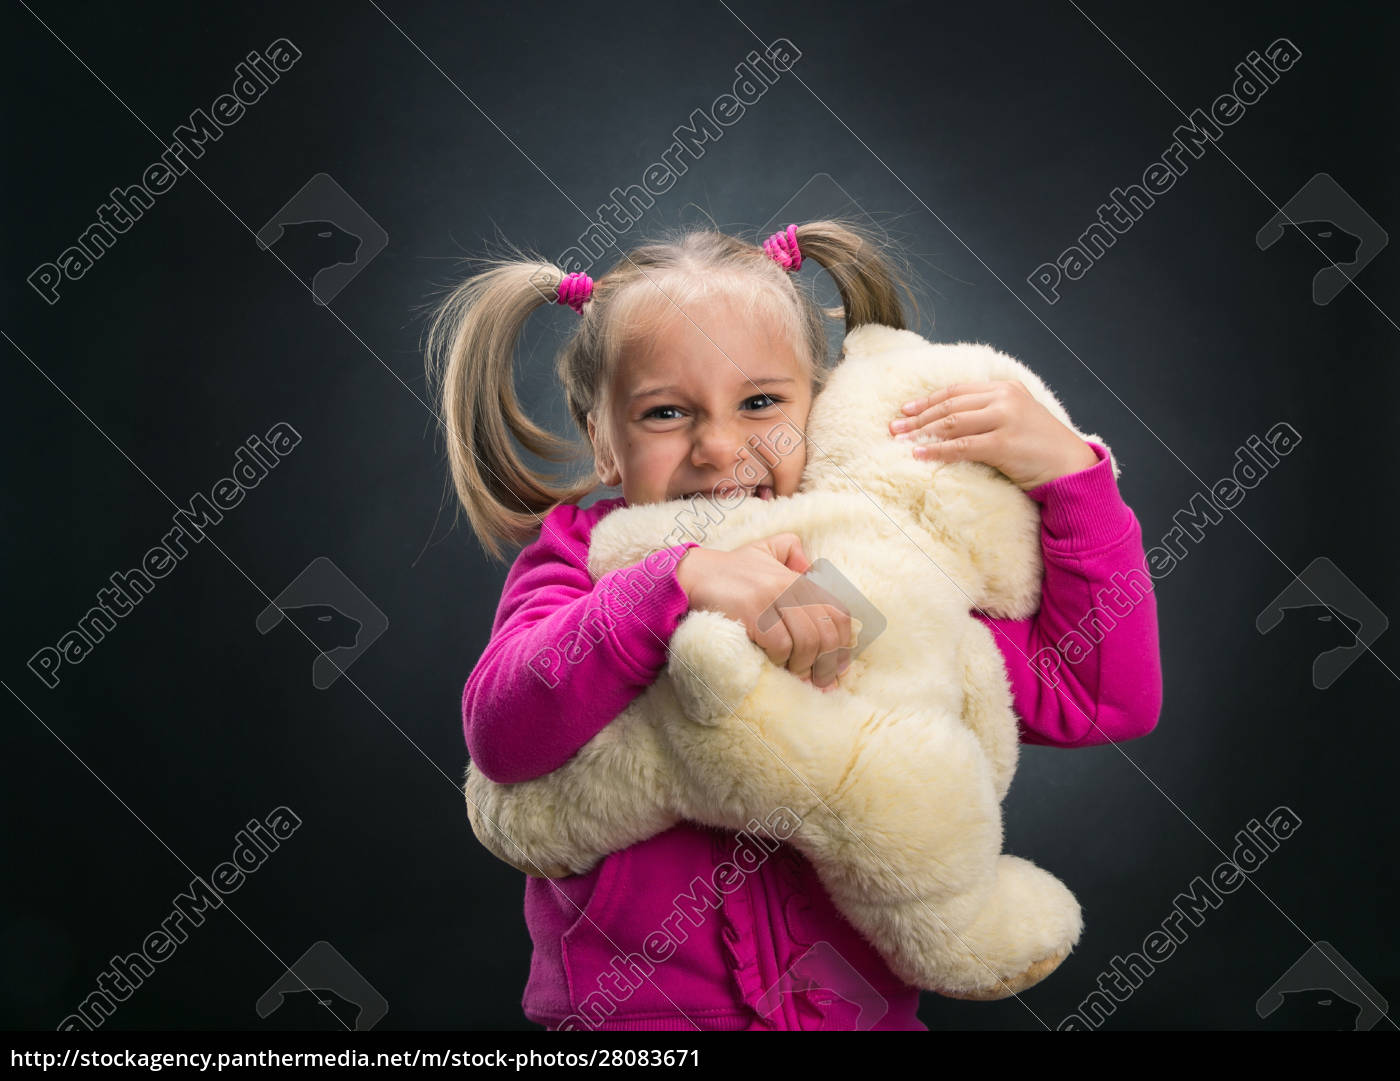 small, cute, girl, holds, toy, bear - 28083671